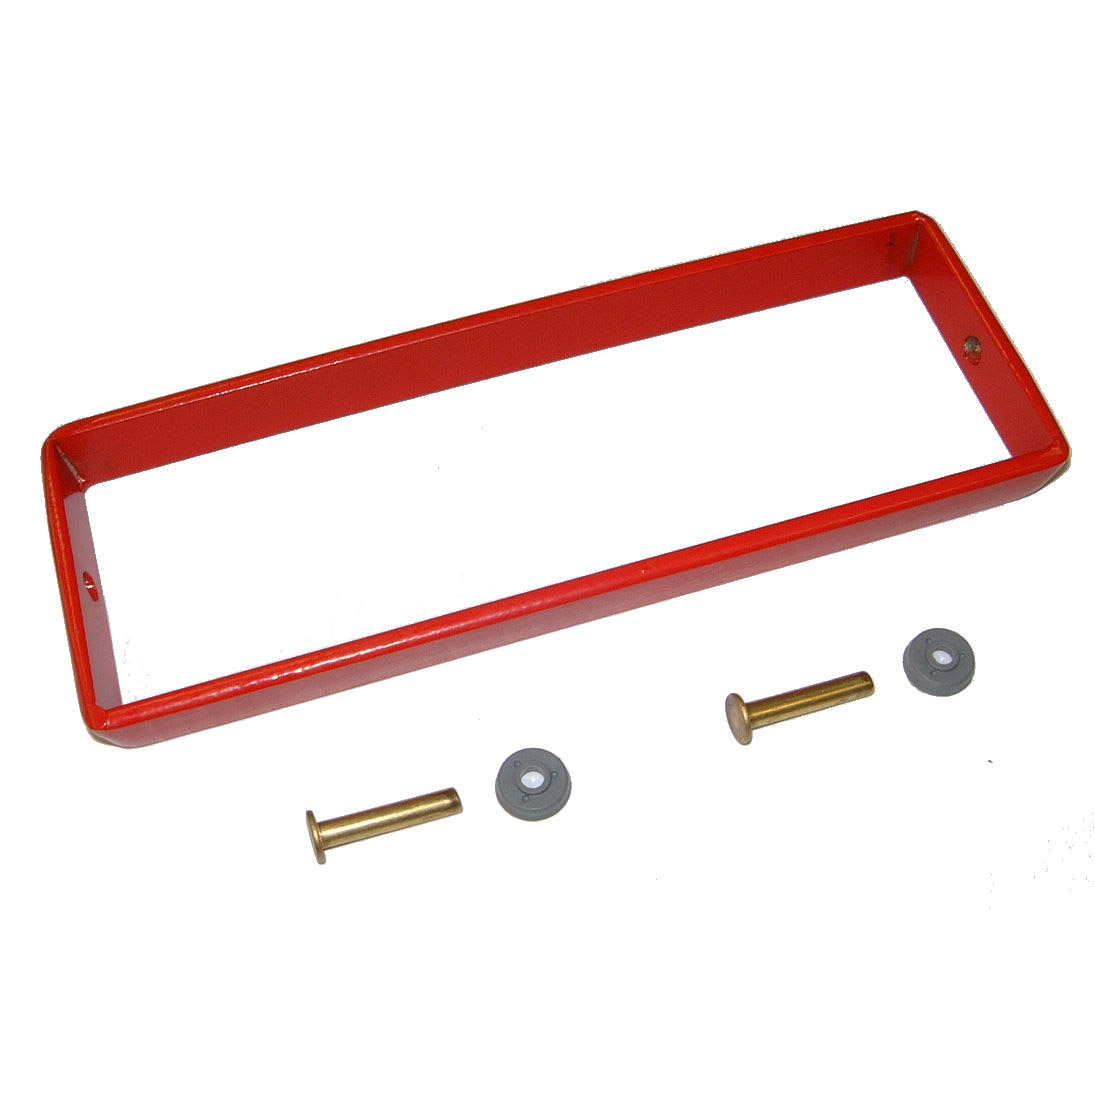 K6 SMALL STEEL GLAZING FRAME KIT X 5